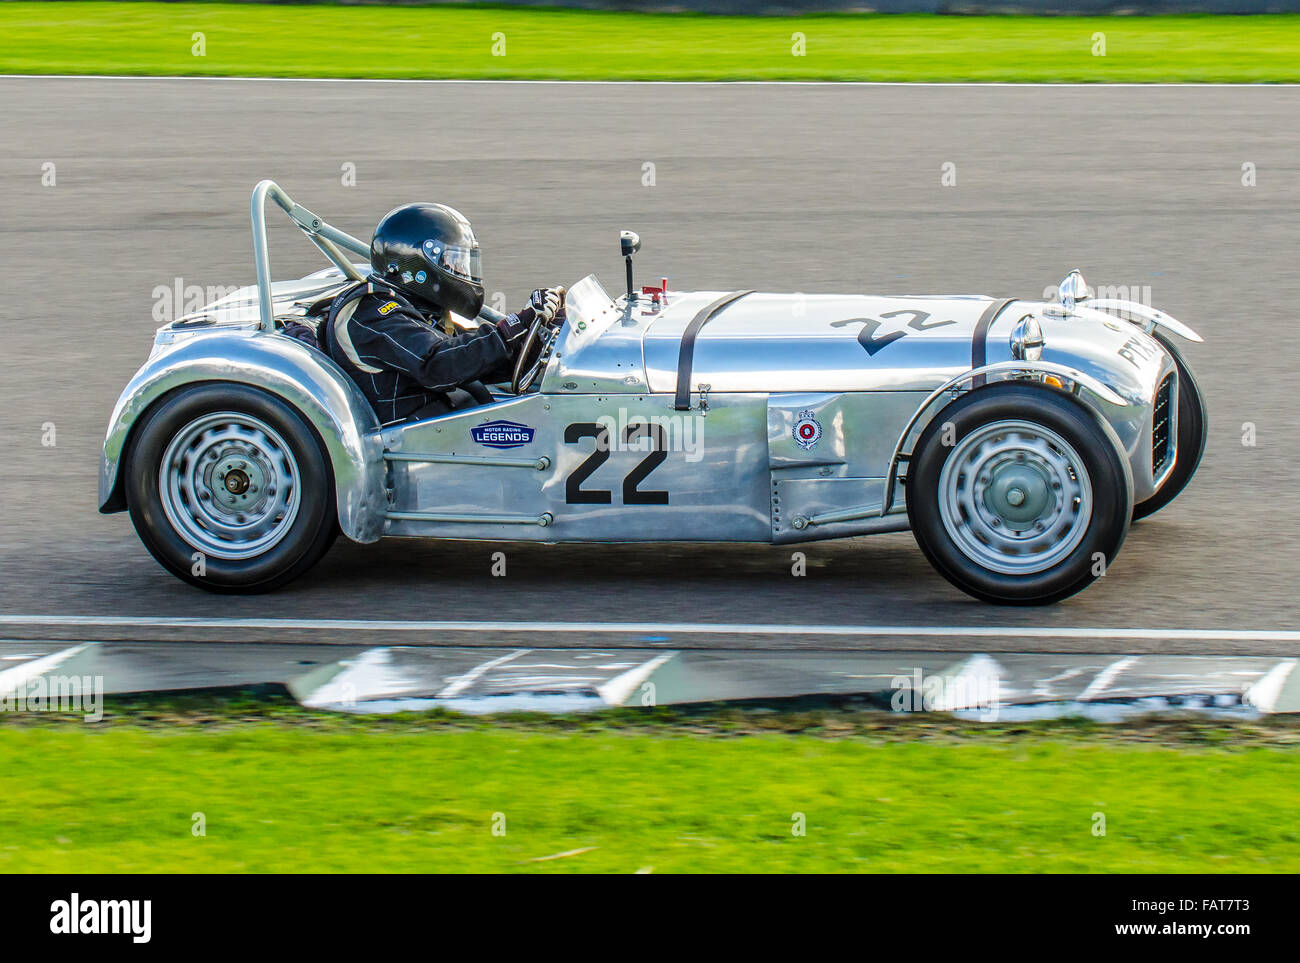 1955 model Lotus Mark VI racing car owned by singer Chris Rea and driven by him at the Goodwood Revival 2015. Chris - Stock Image